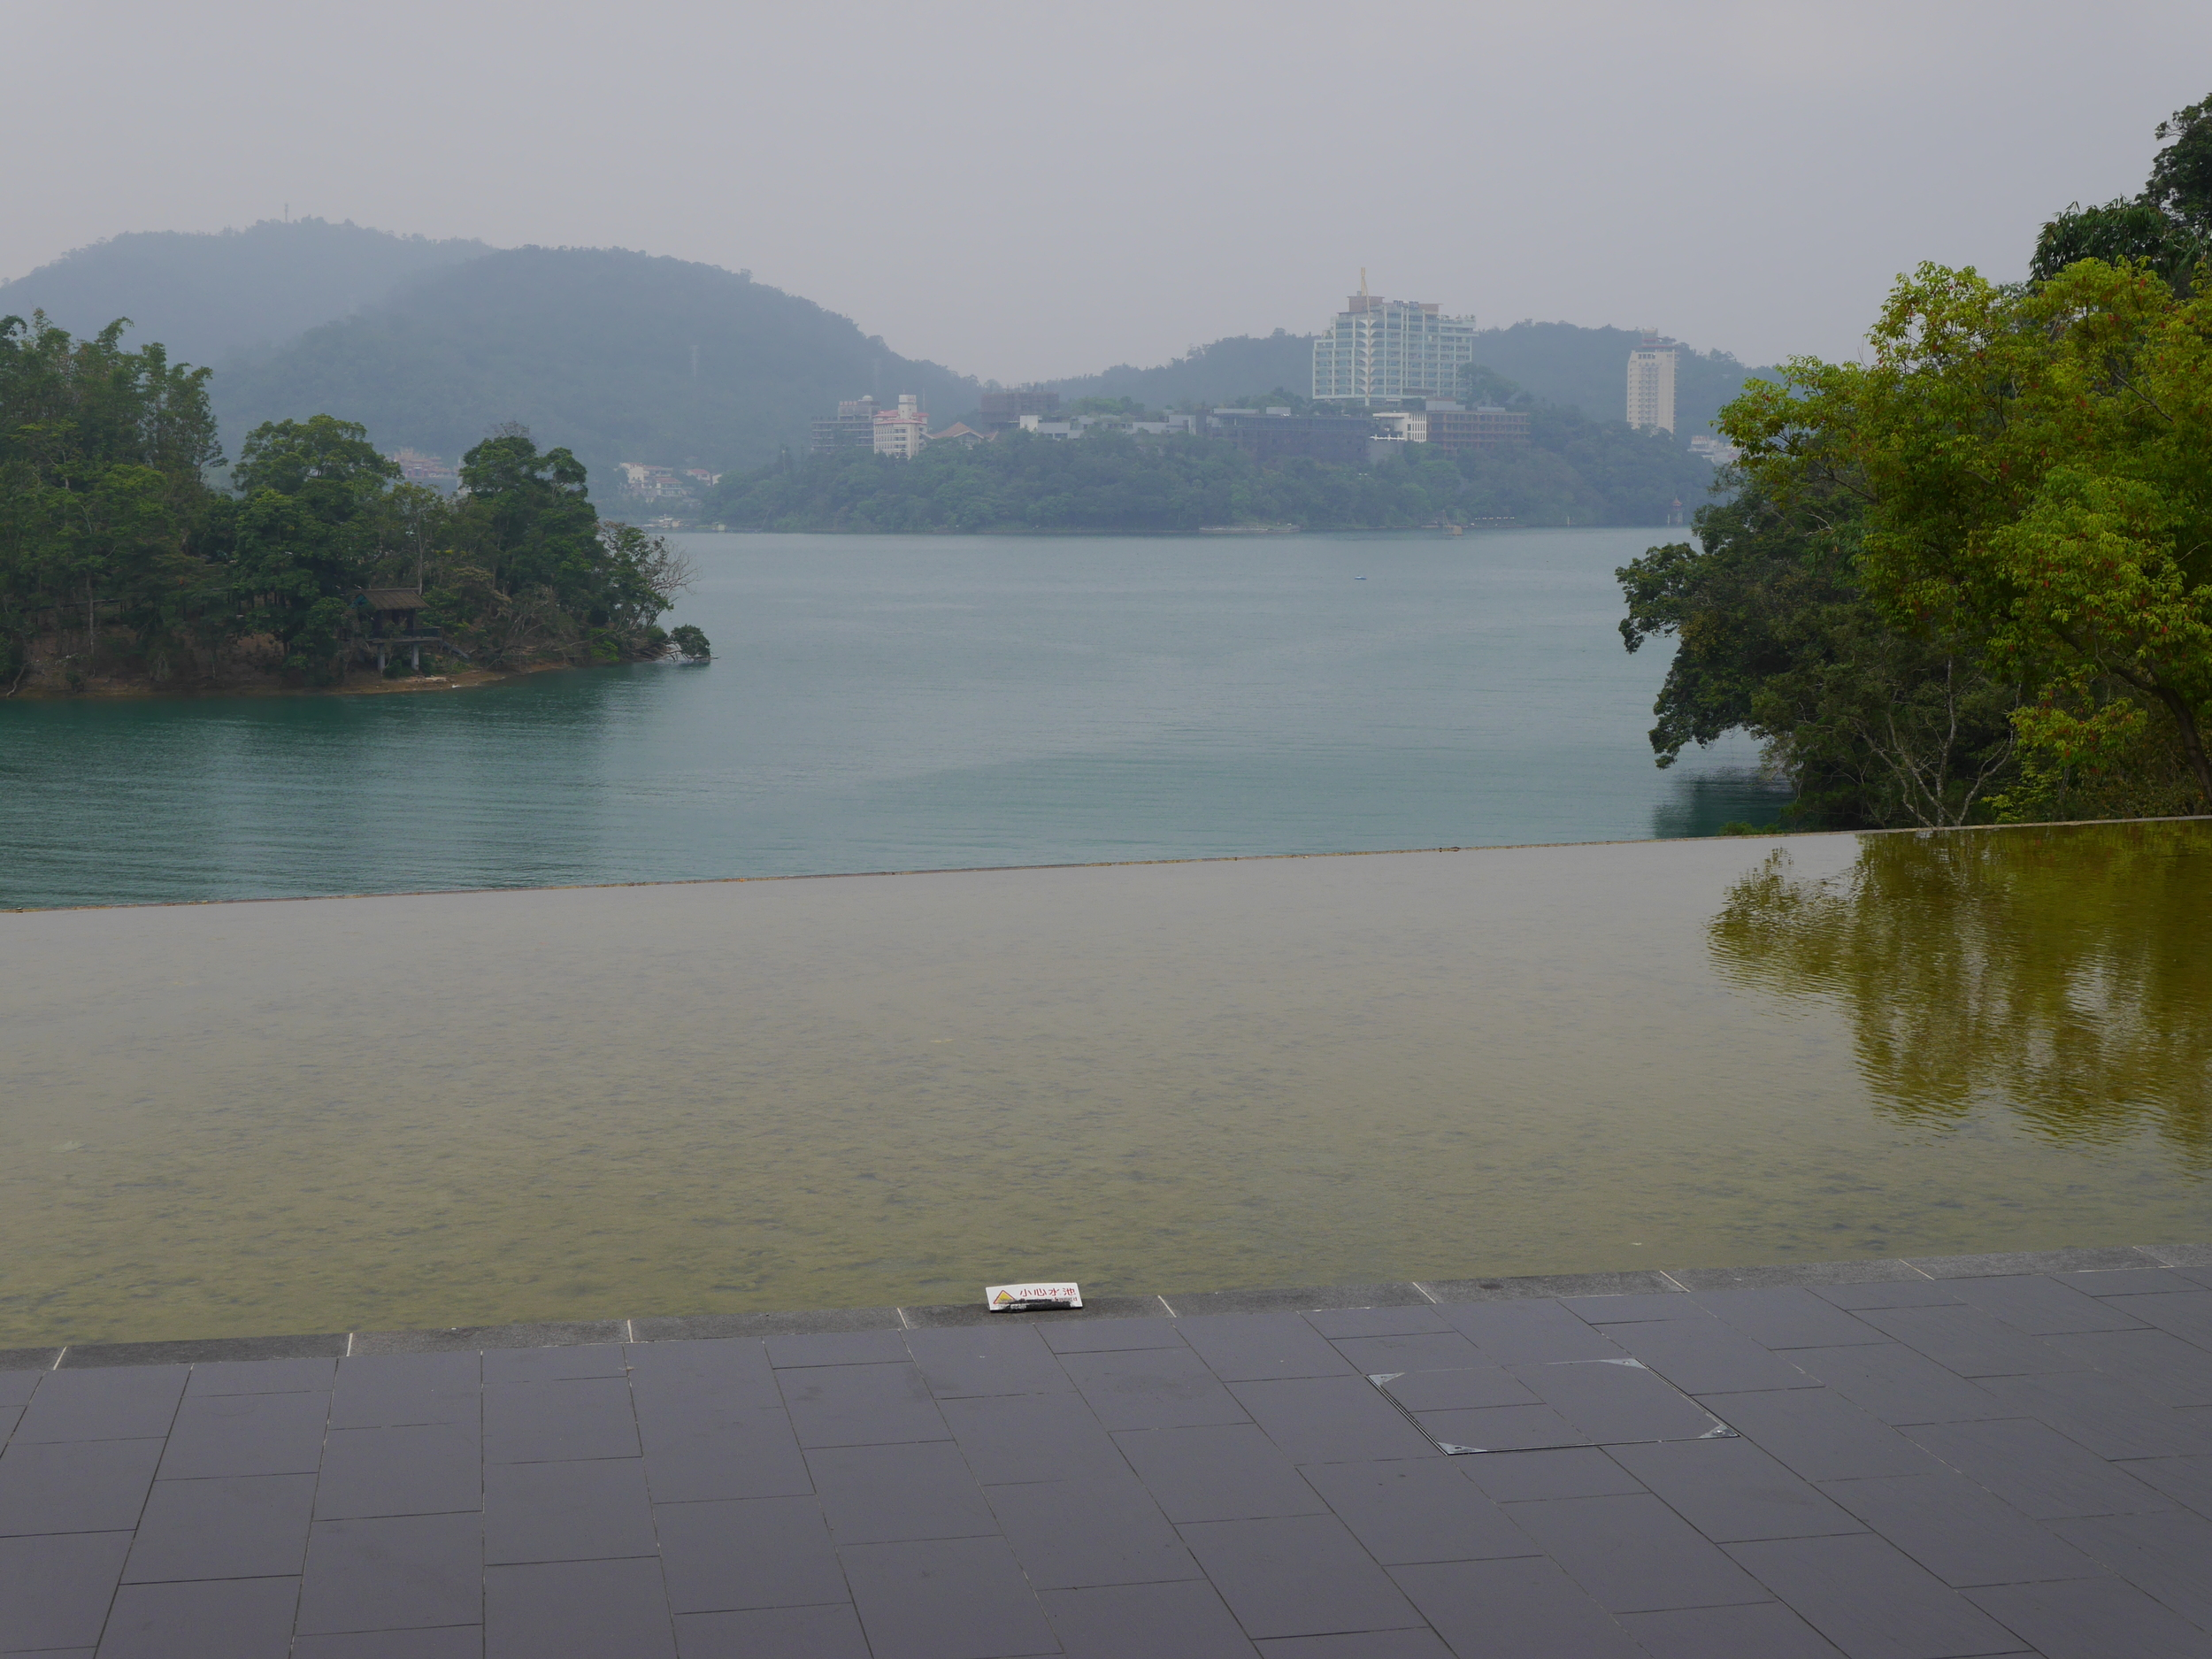 The view of Sun Moon Lake.